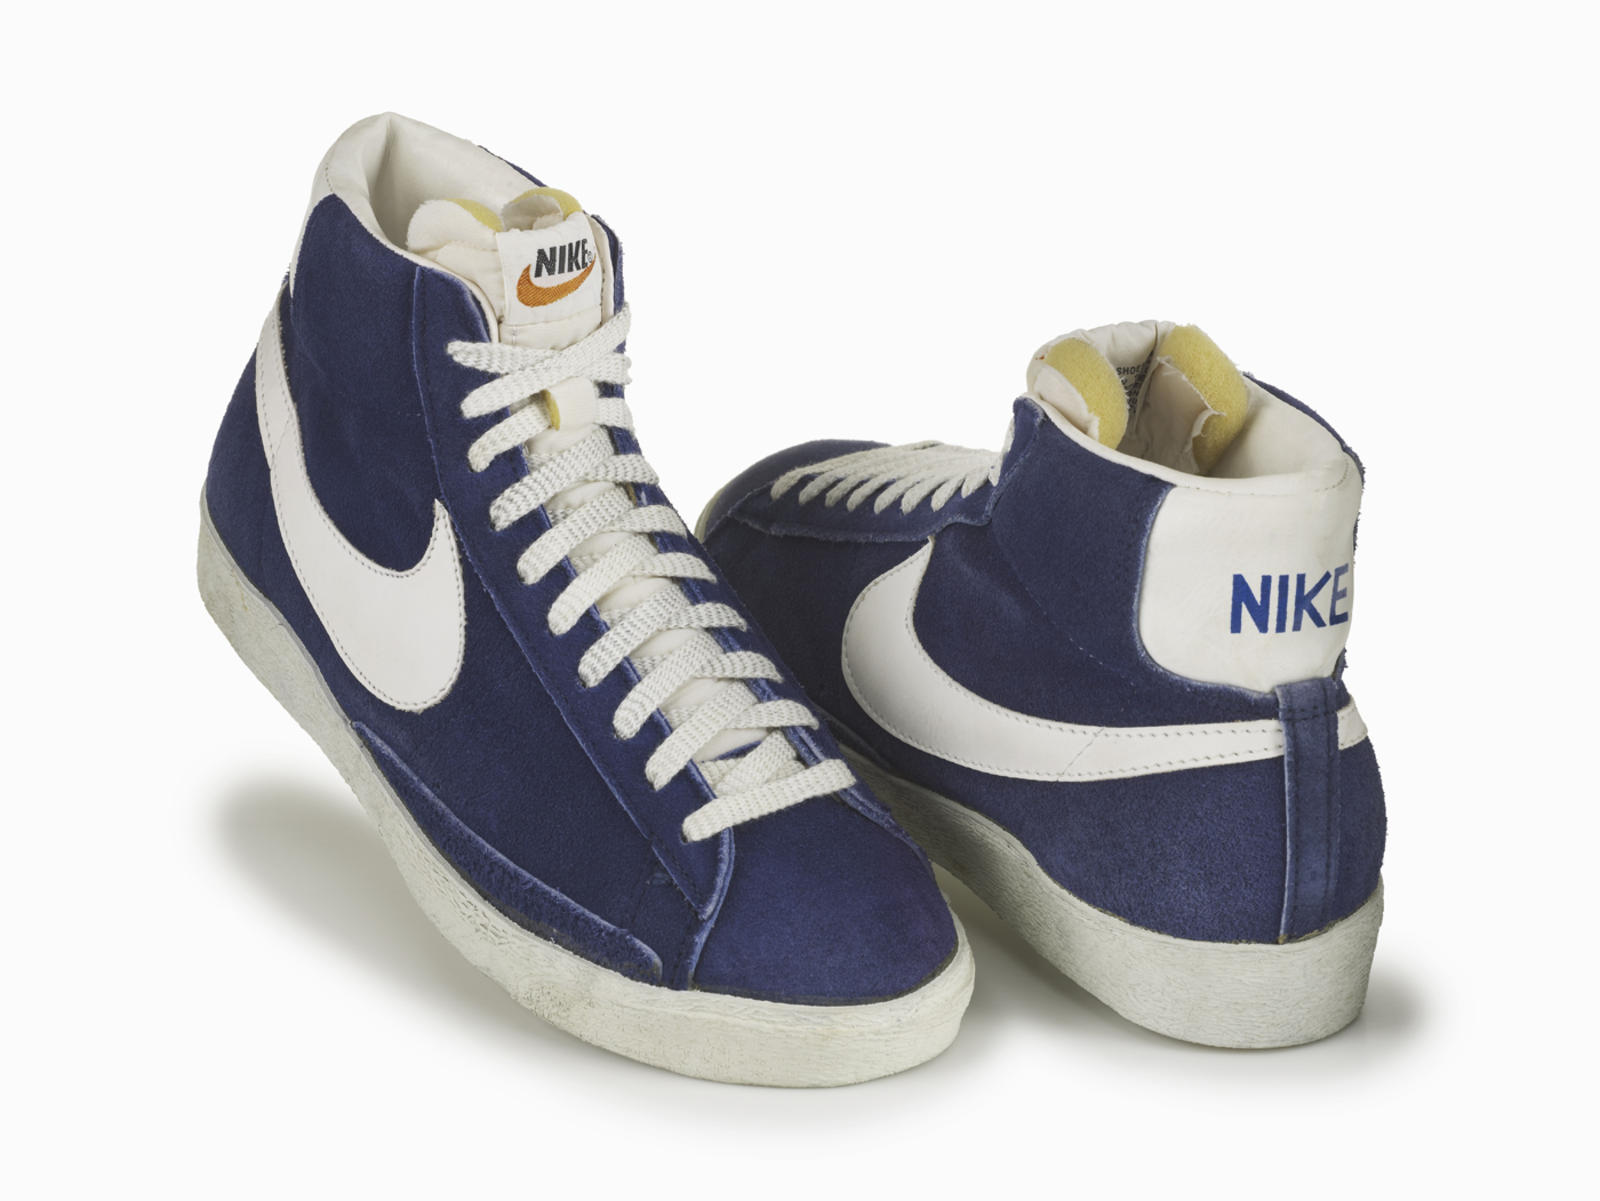 buy nike shoes nyc 931002